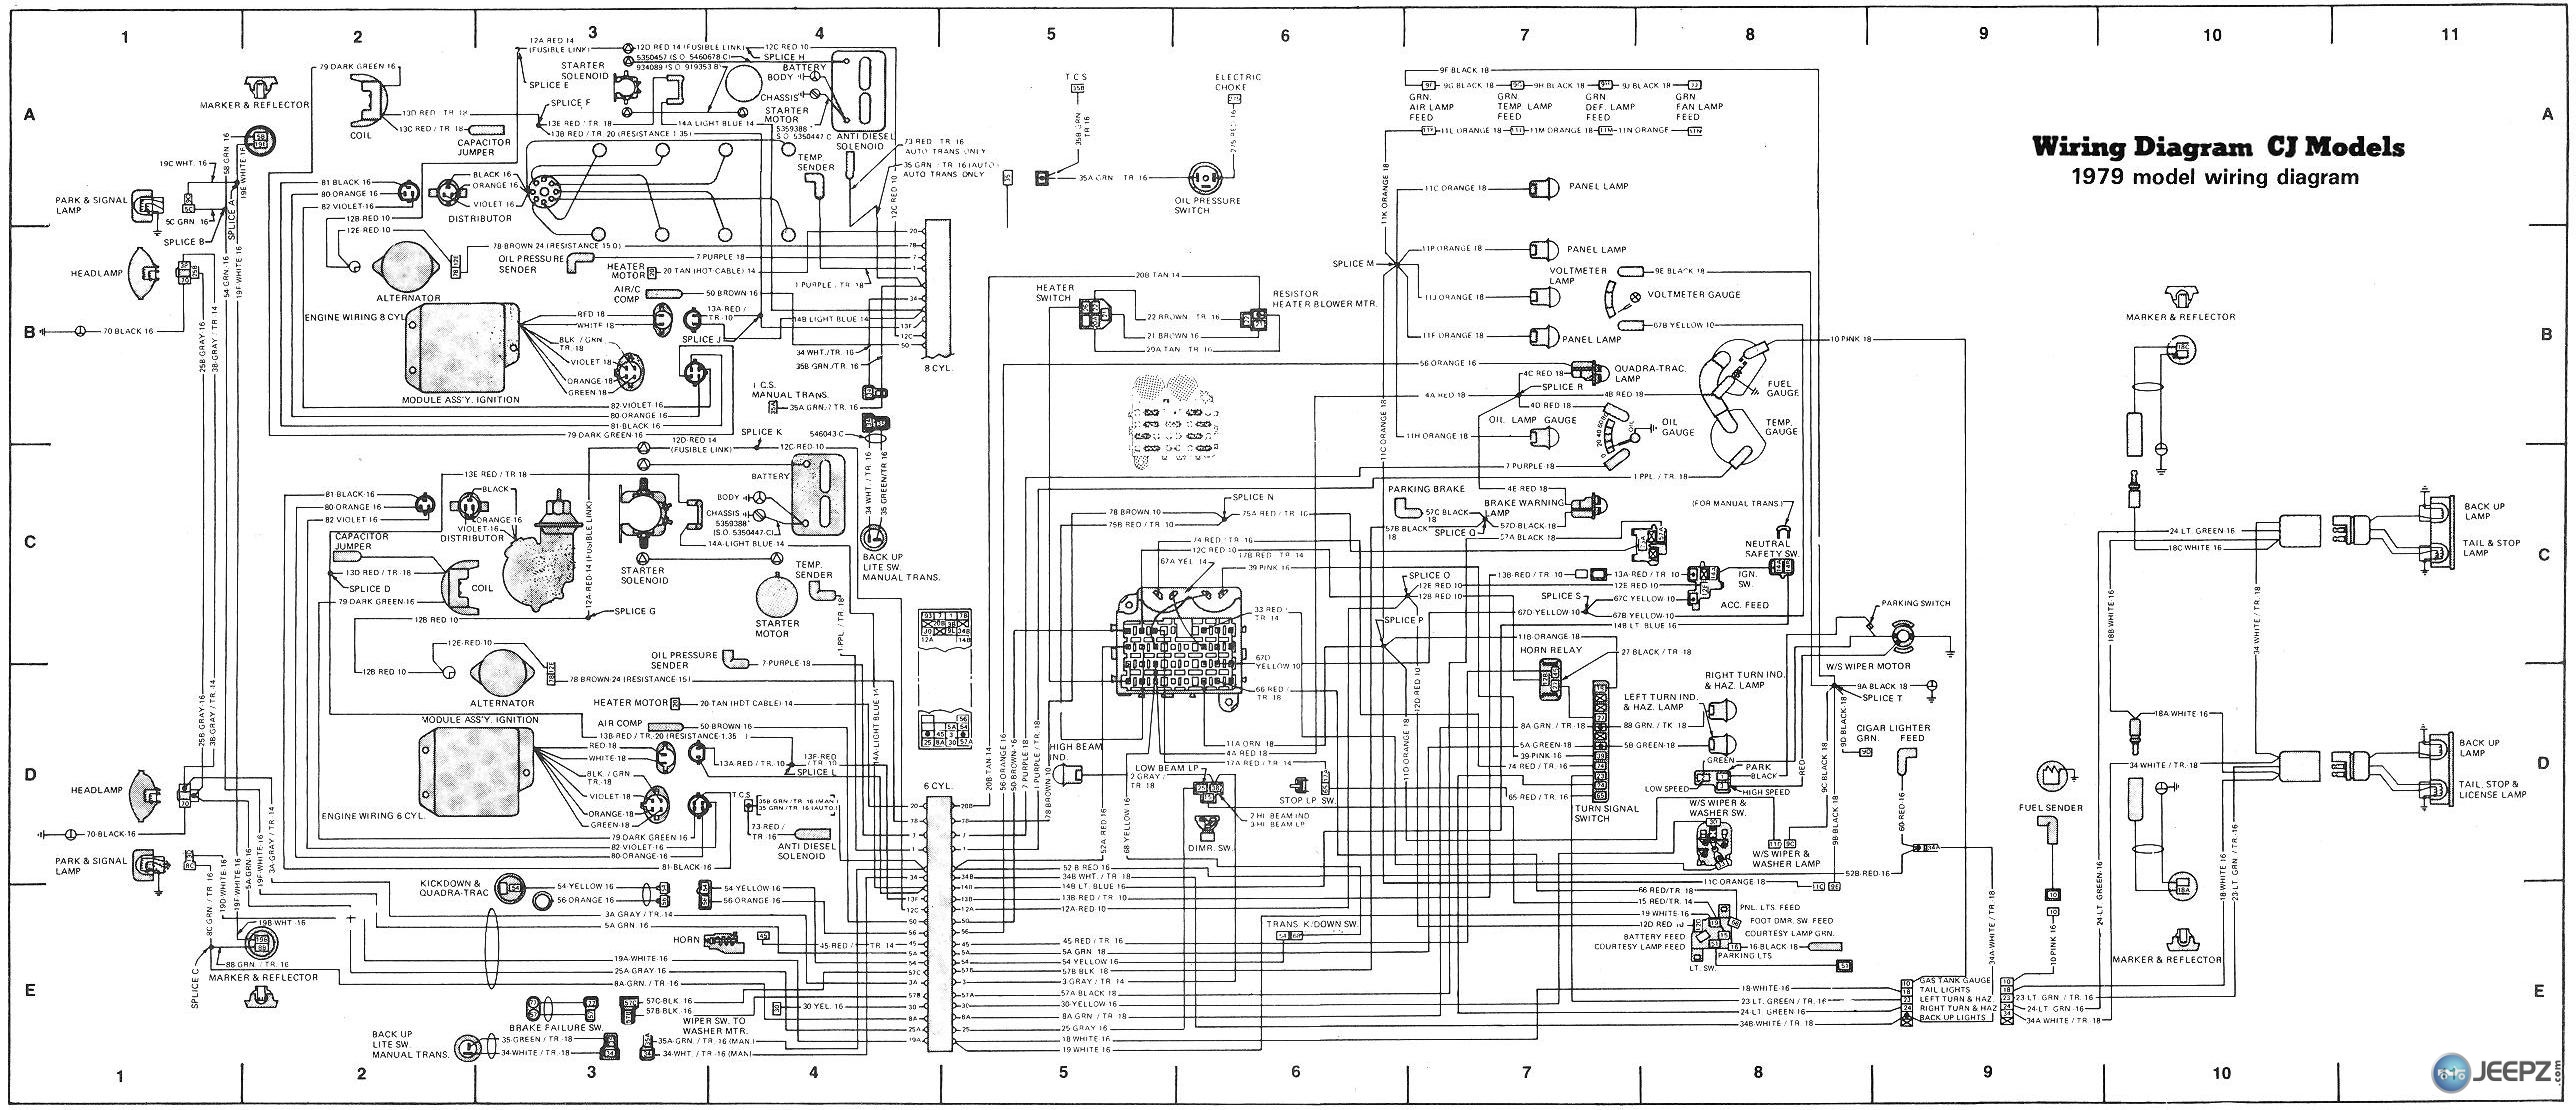 similiar 1979 jeep cj7 wiring diagram keywords willys jeep wiring diagram furthermore jeep cj5 wiring diagram